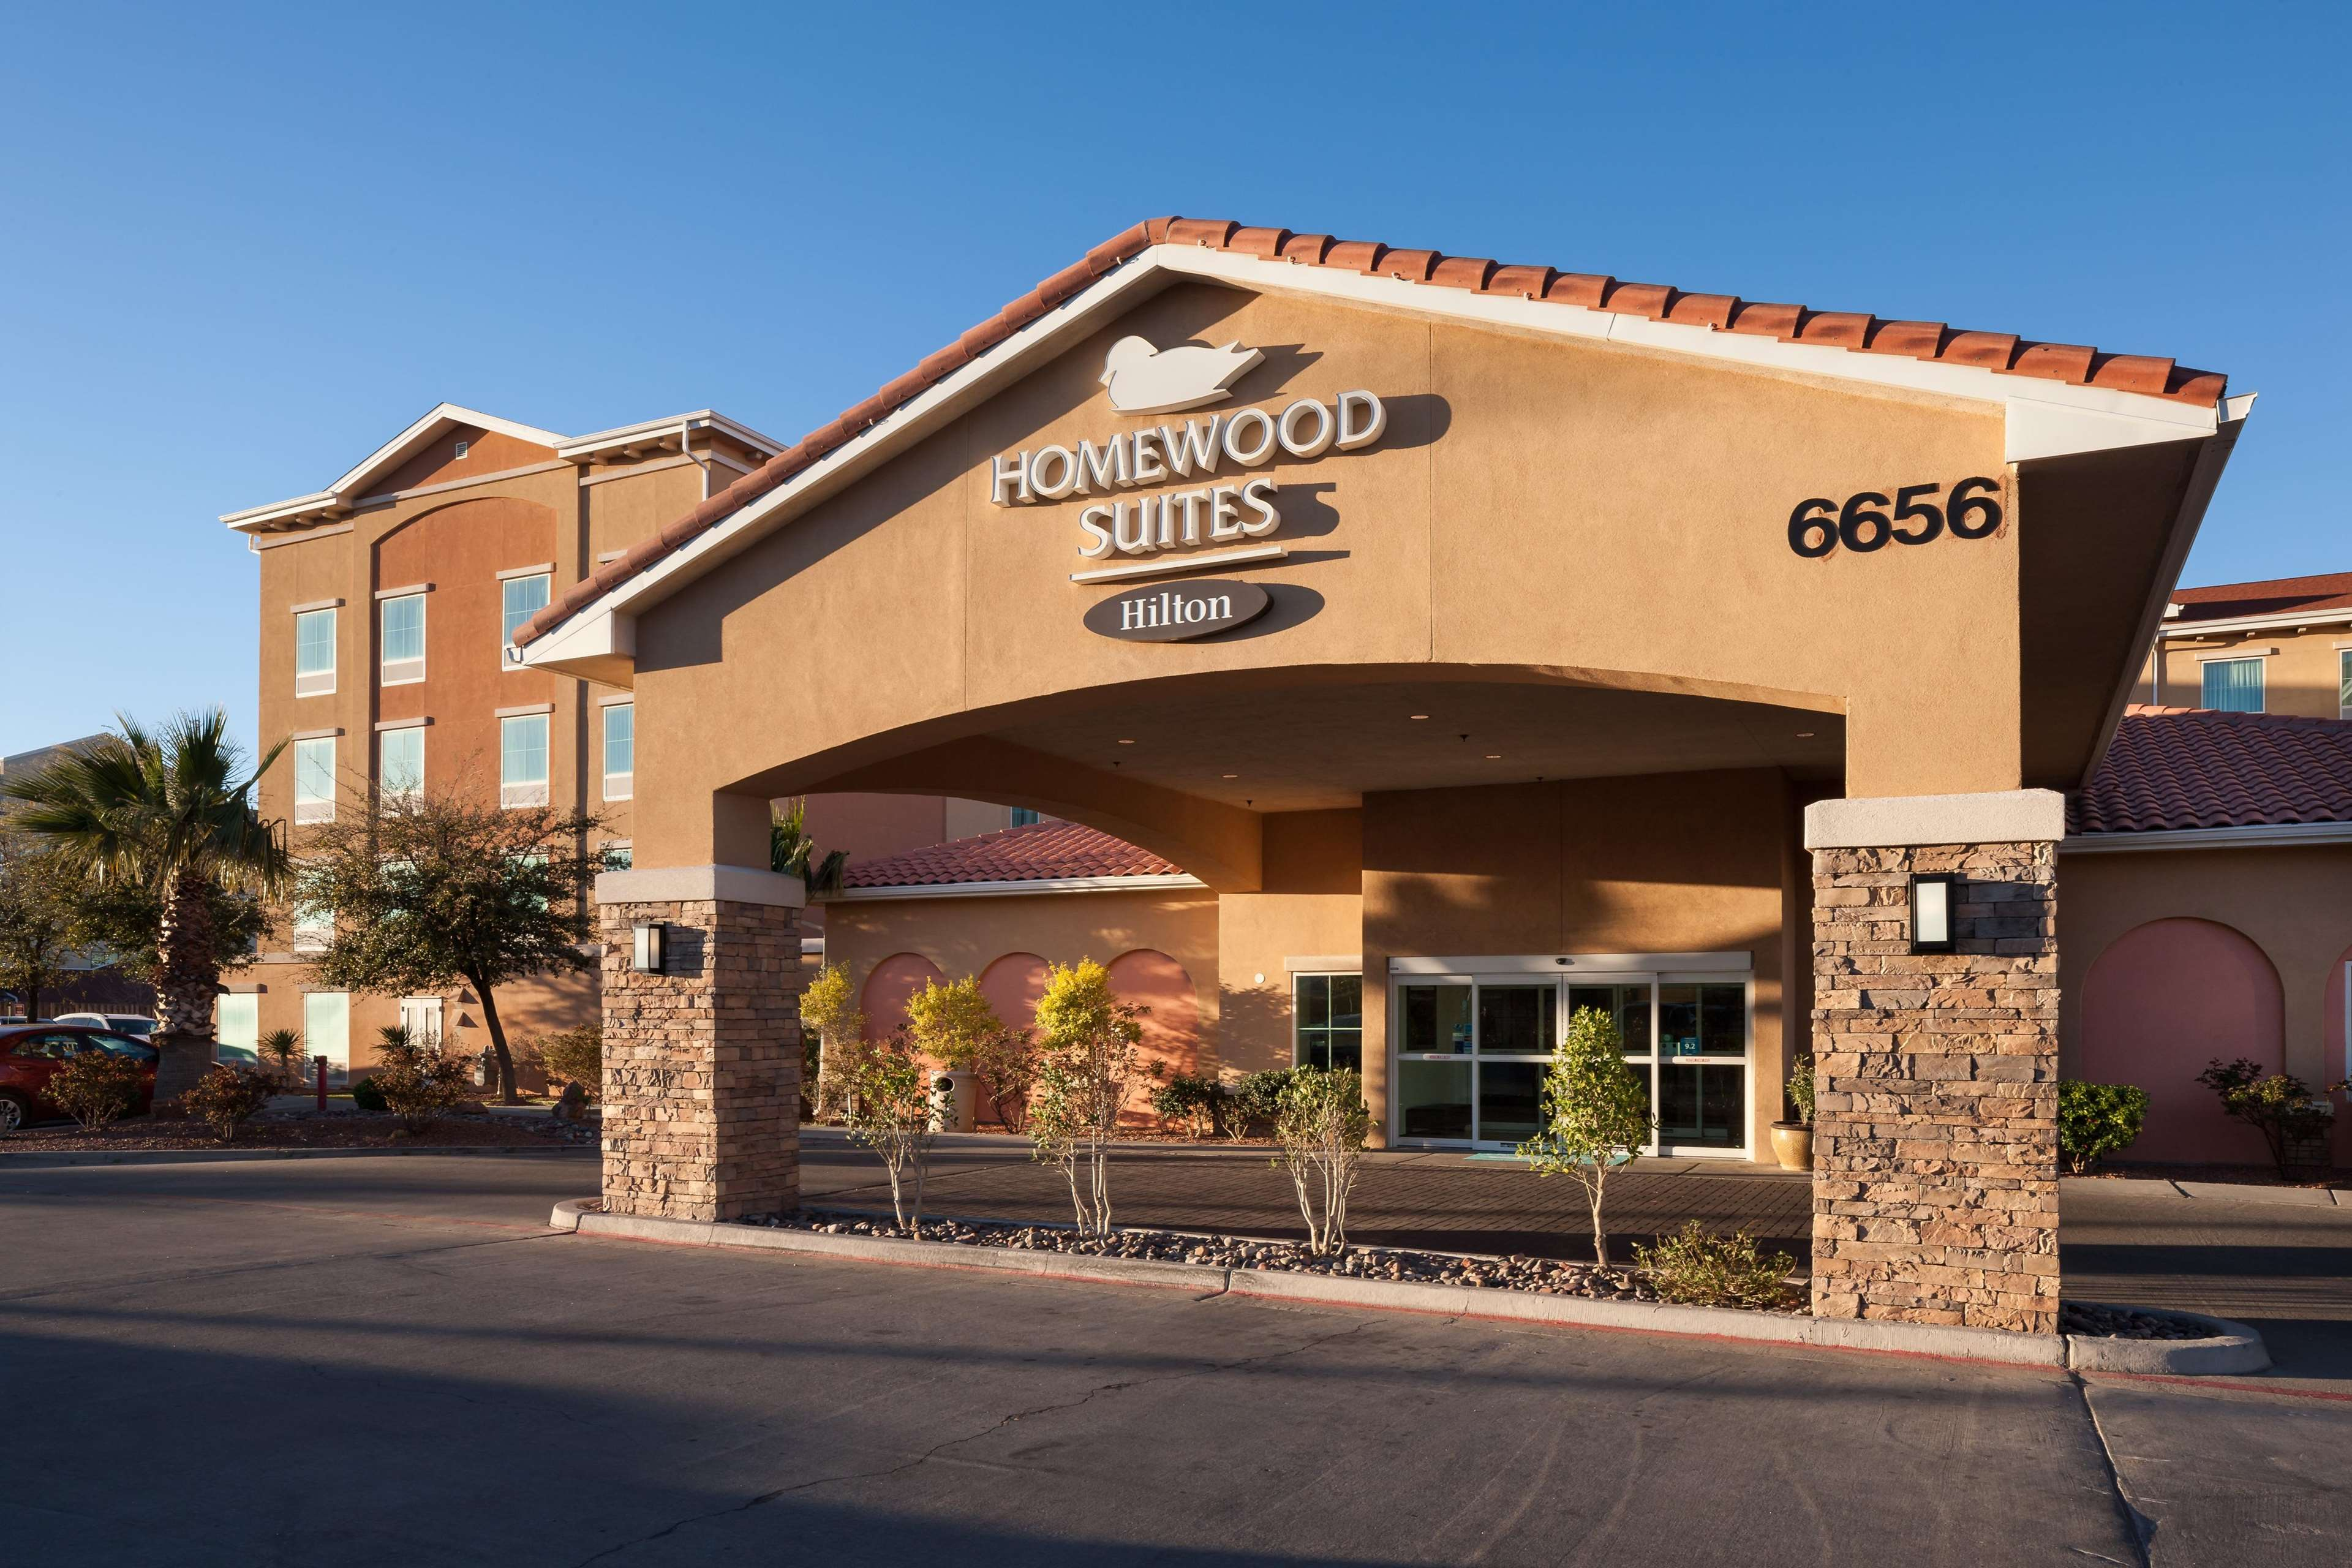 homewood suites by hilton el paso airport coupons near me in el paso 8coupons. Black Bedroom Furniture Sets. Home Design Ideas